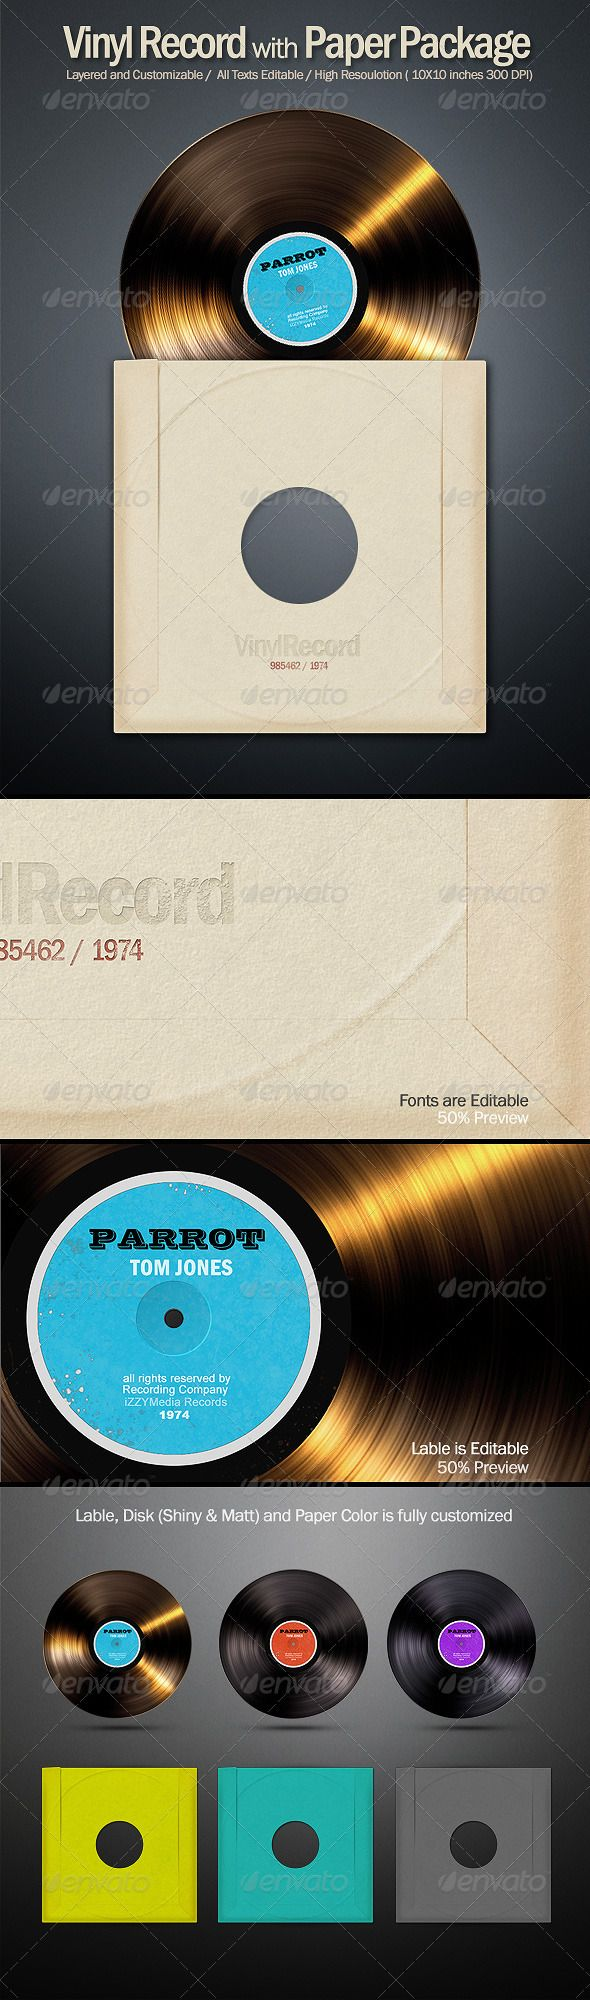 Vinyl Record Disk Vinyl Records Vinyl Business Card Mock Up